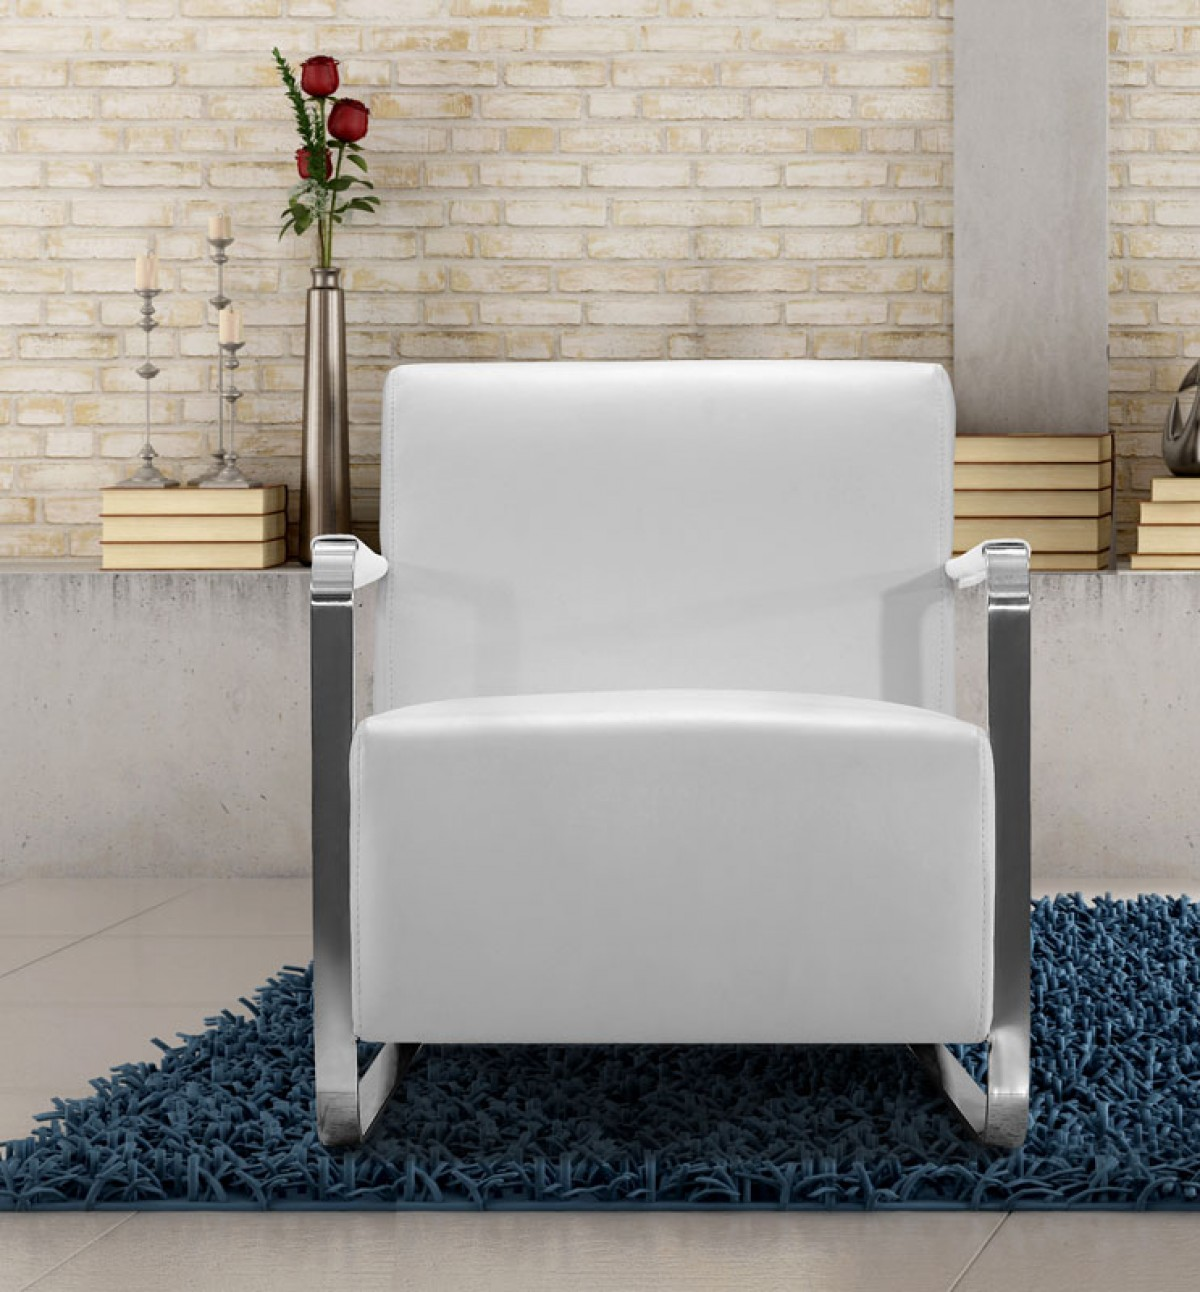 Modern White Leather Low Profile Lounge Chair - Click Image to Close